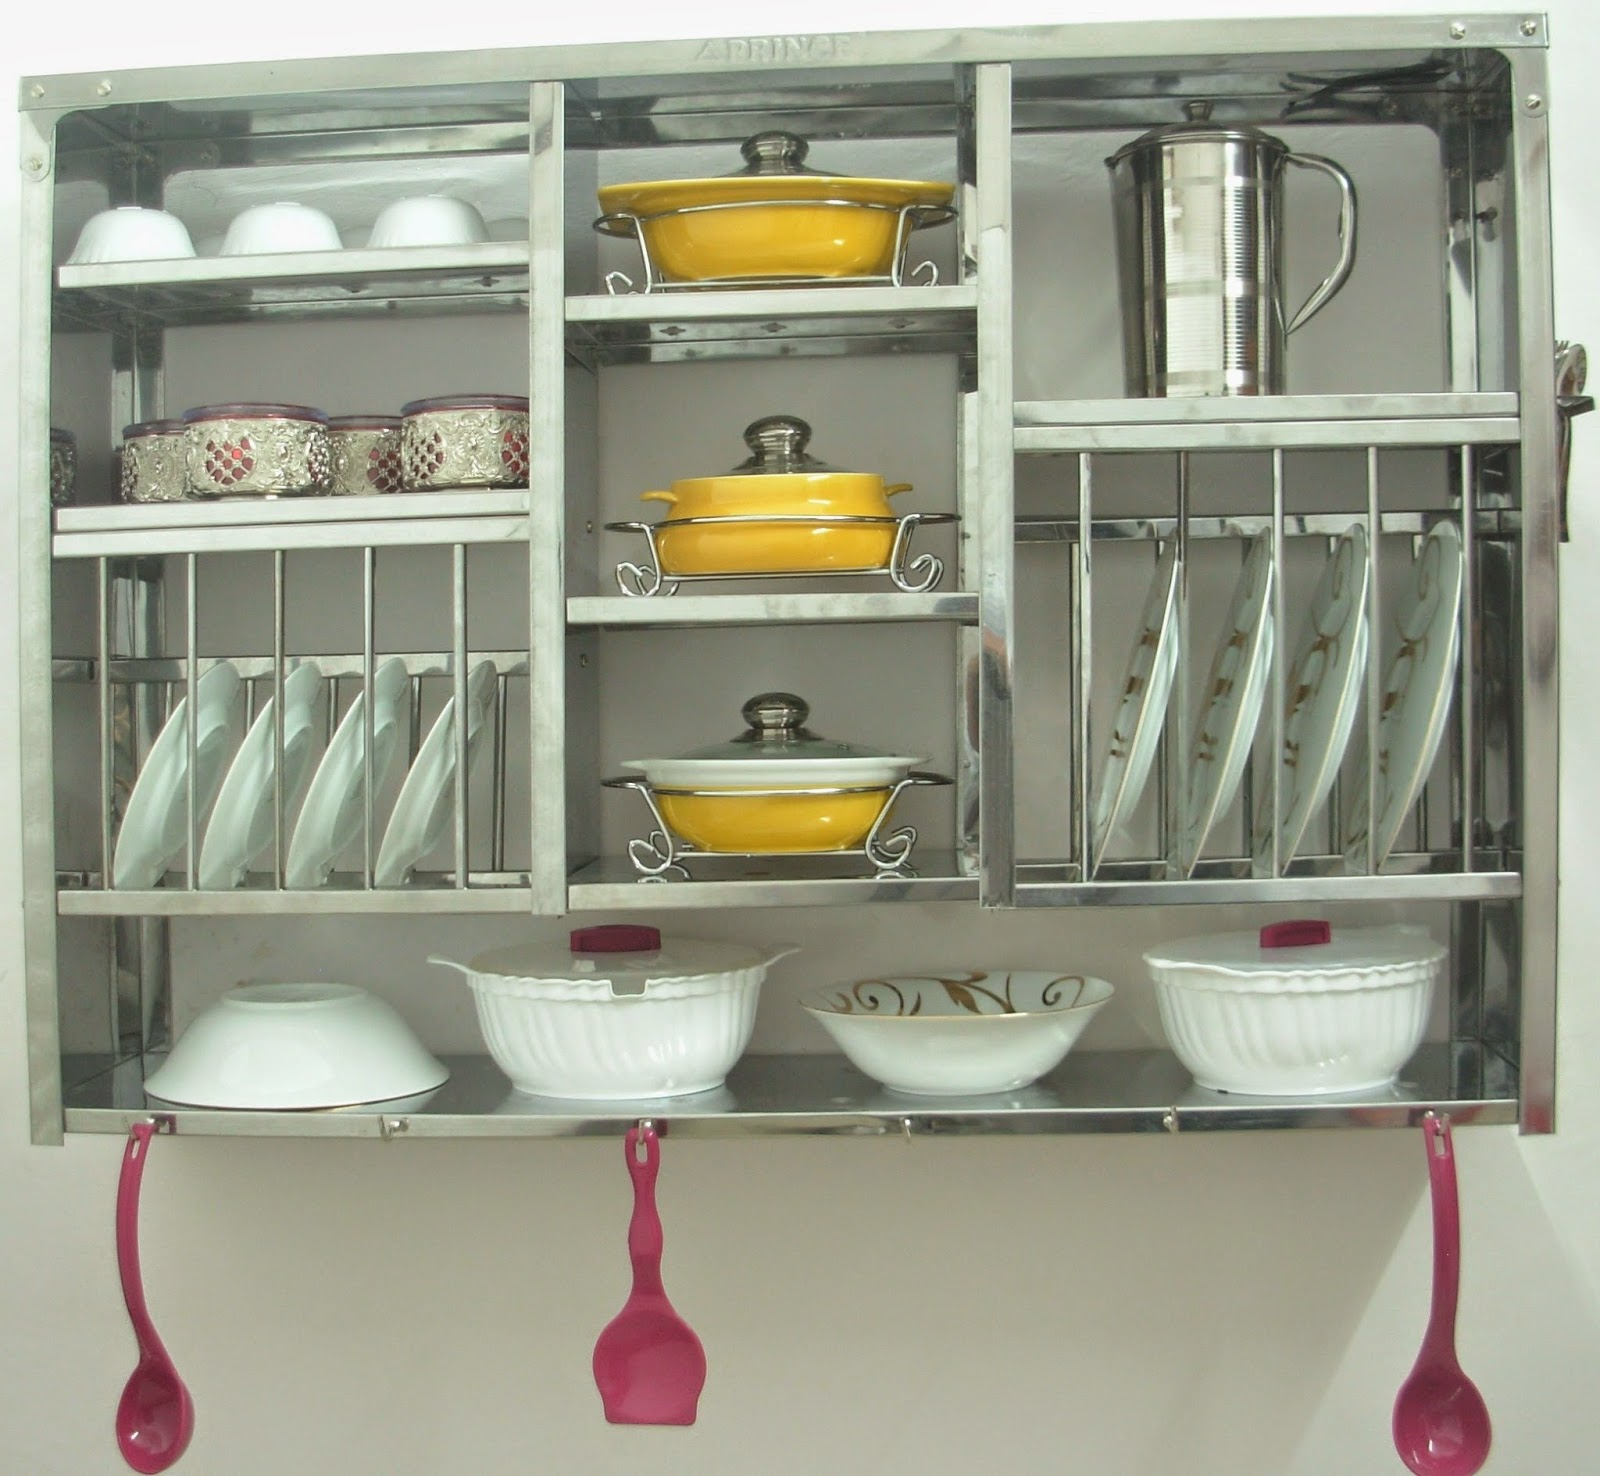 Kitchen Wall Hanging Plate Racks Dish Drying Racks Shelf Racks